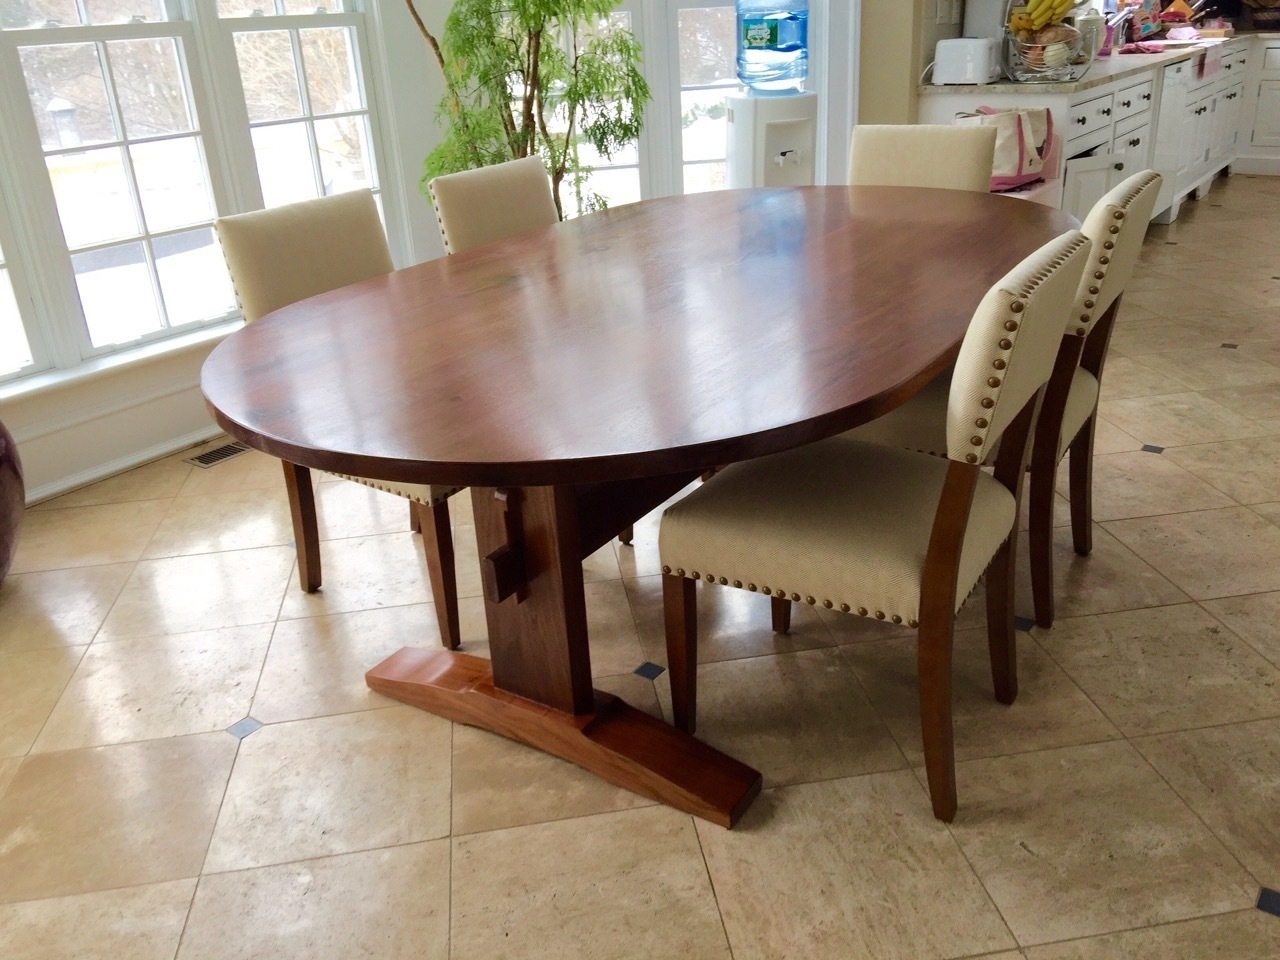 Custom Dining Tables For New York City, Ny; Long Island, Ny & Darien, Ct With Newest New York Dining Tables (View 3 of 25)